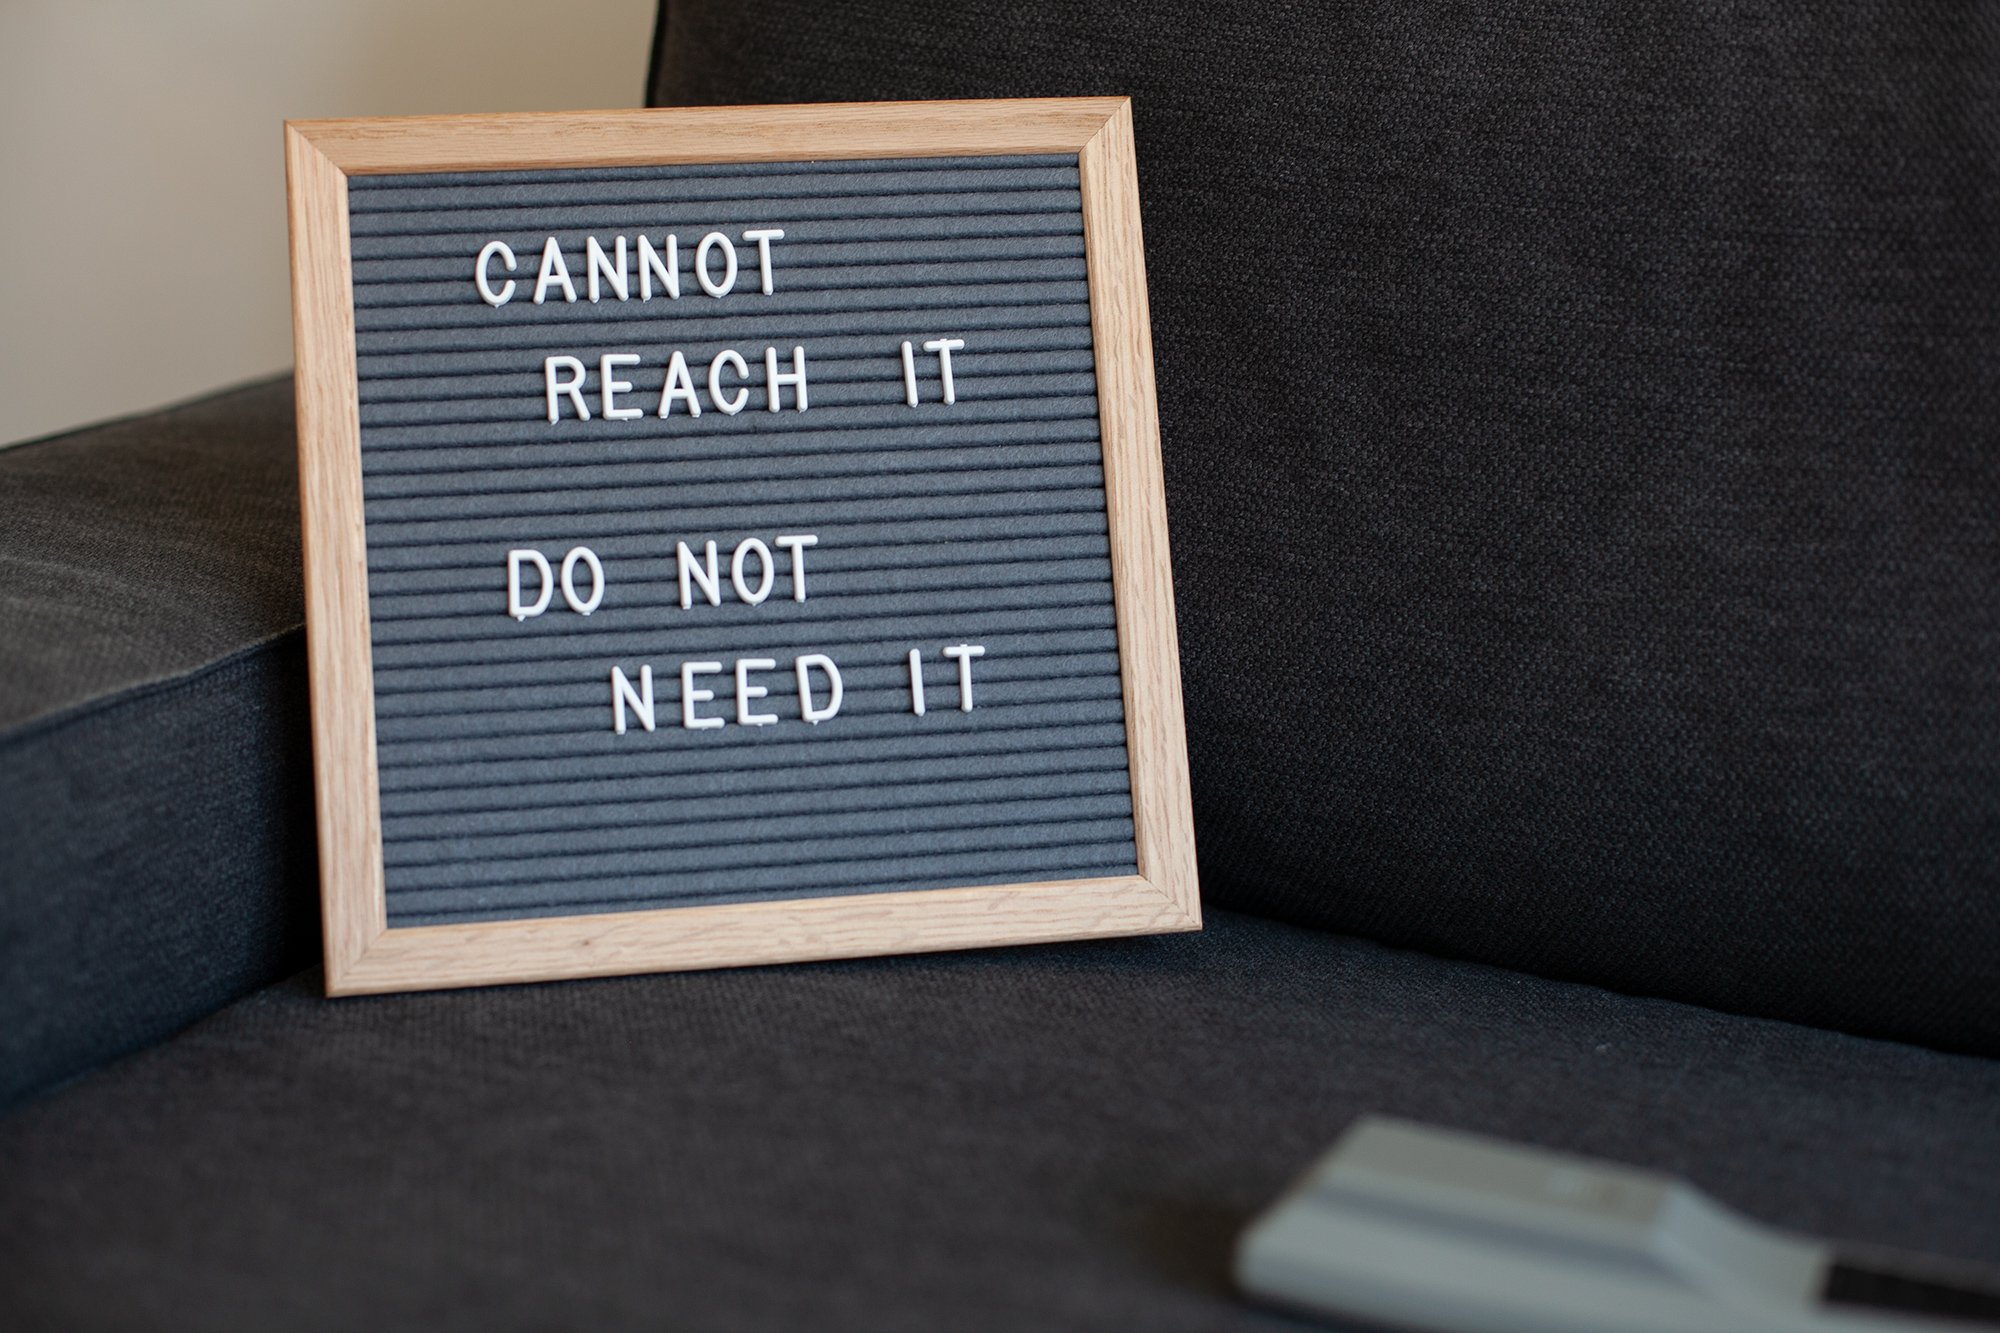 10x10 Inch Gray Felt Letter Board - Plentiful 680 Changeable White Letters to Cover Multiple Usage Scenarios - Durable Oak Frame by DraiviMedia (Image #2)